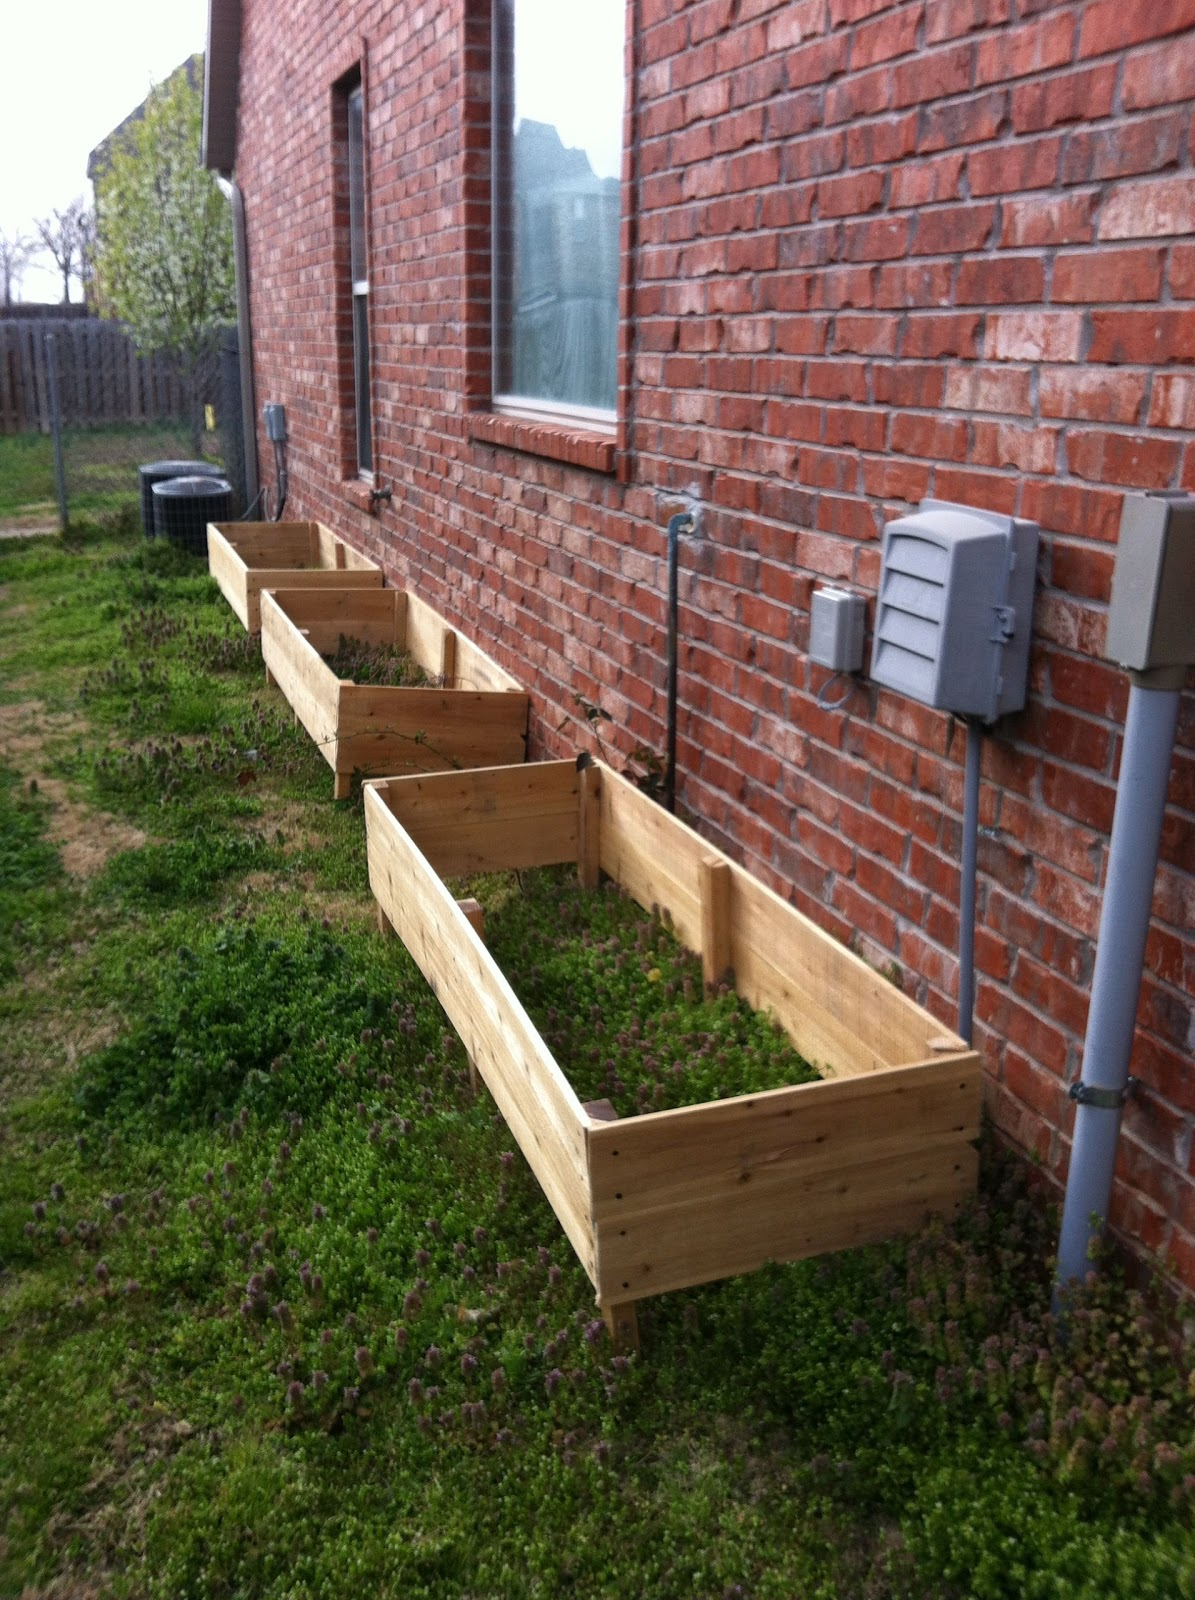 The Vintage Butterfly Cedar Raised Garden Beds on the Cheap